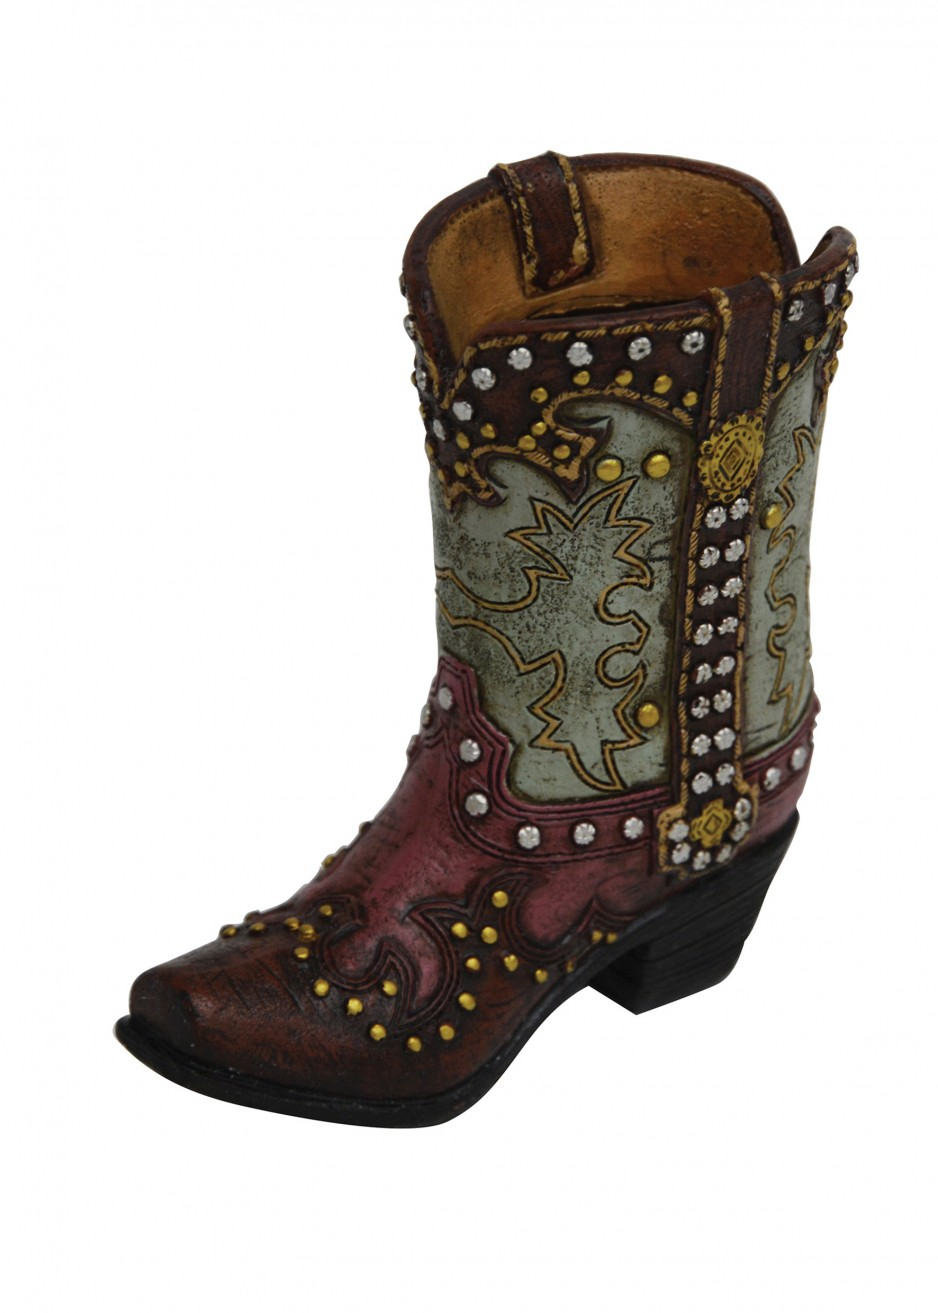 RESIN STUD PINK BOOT SMALL